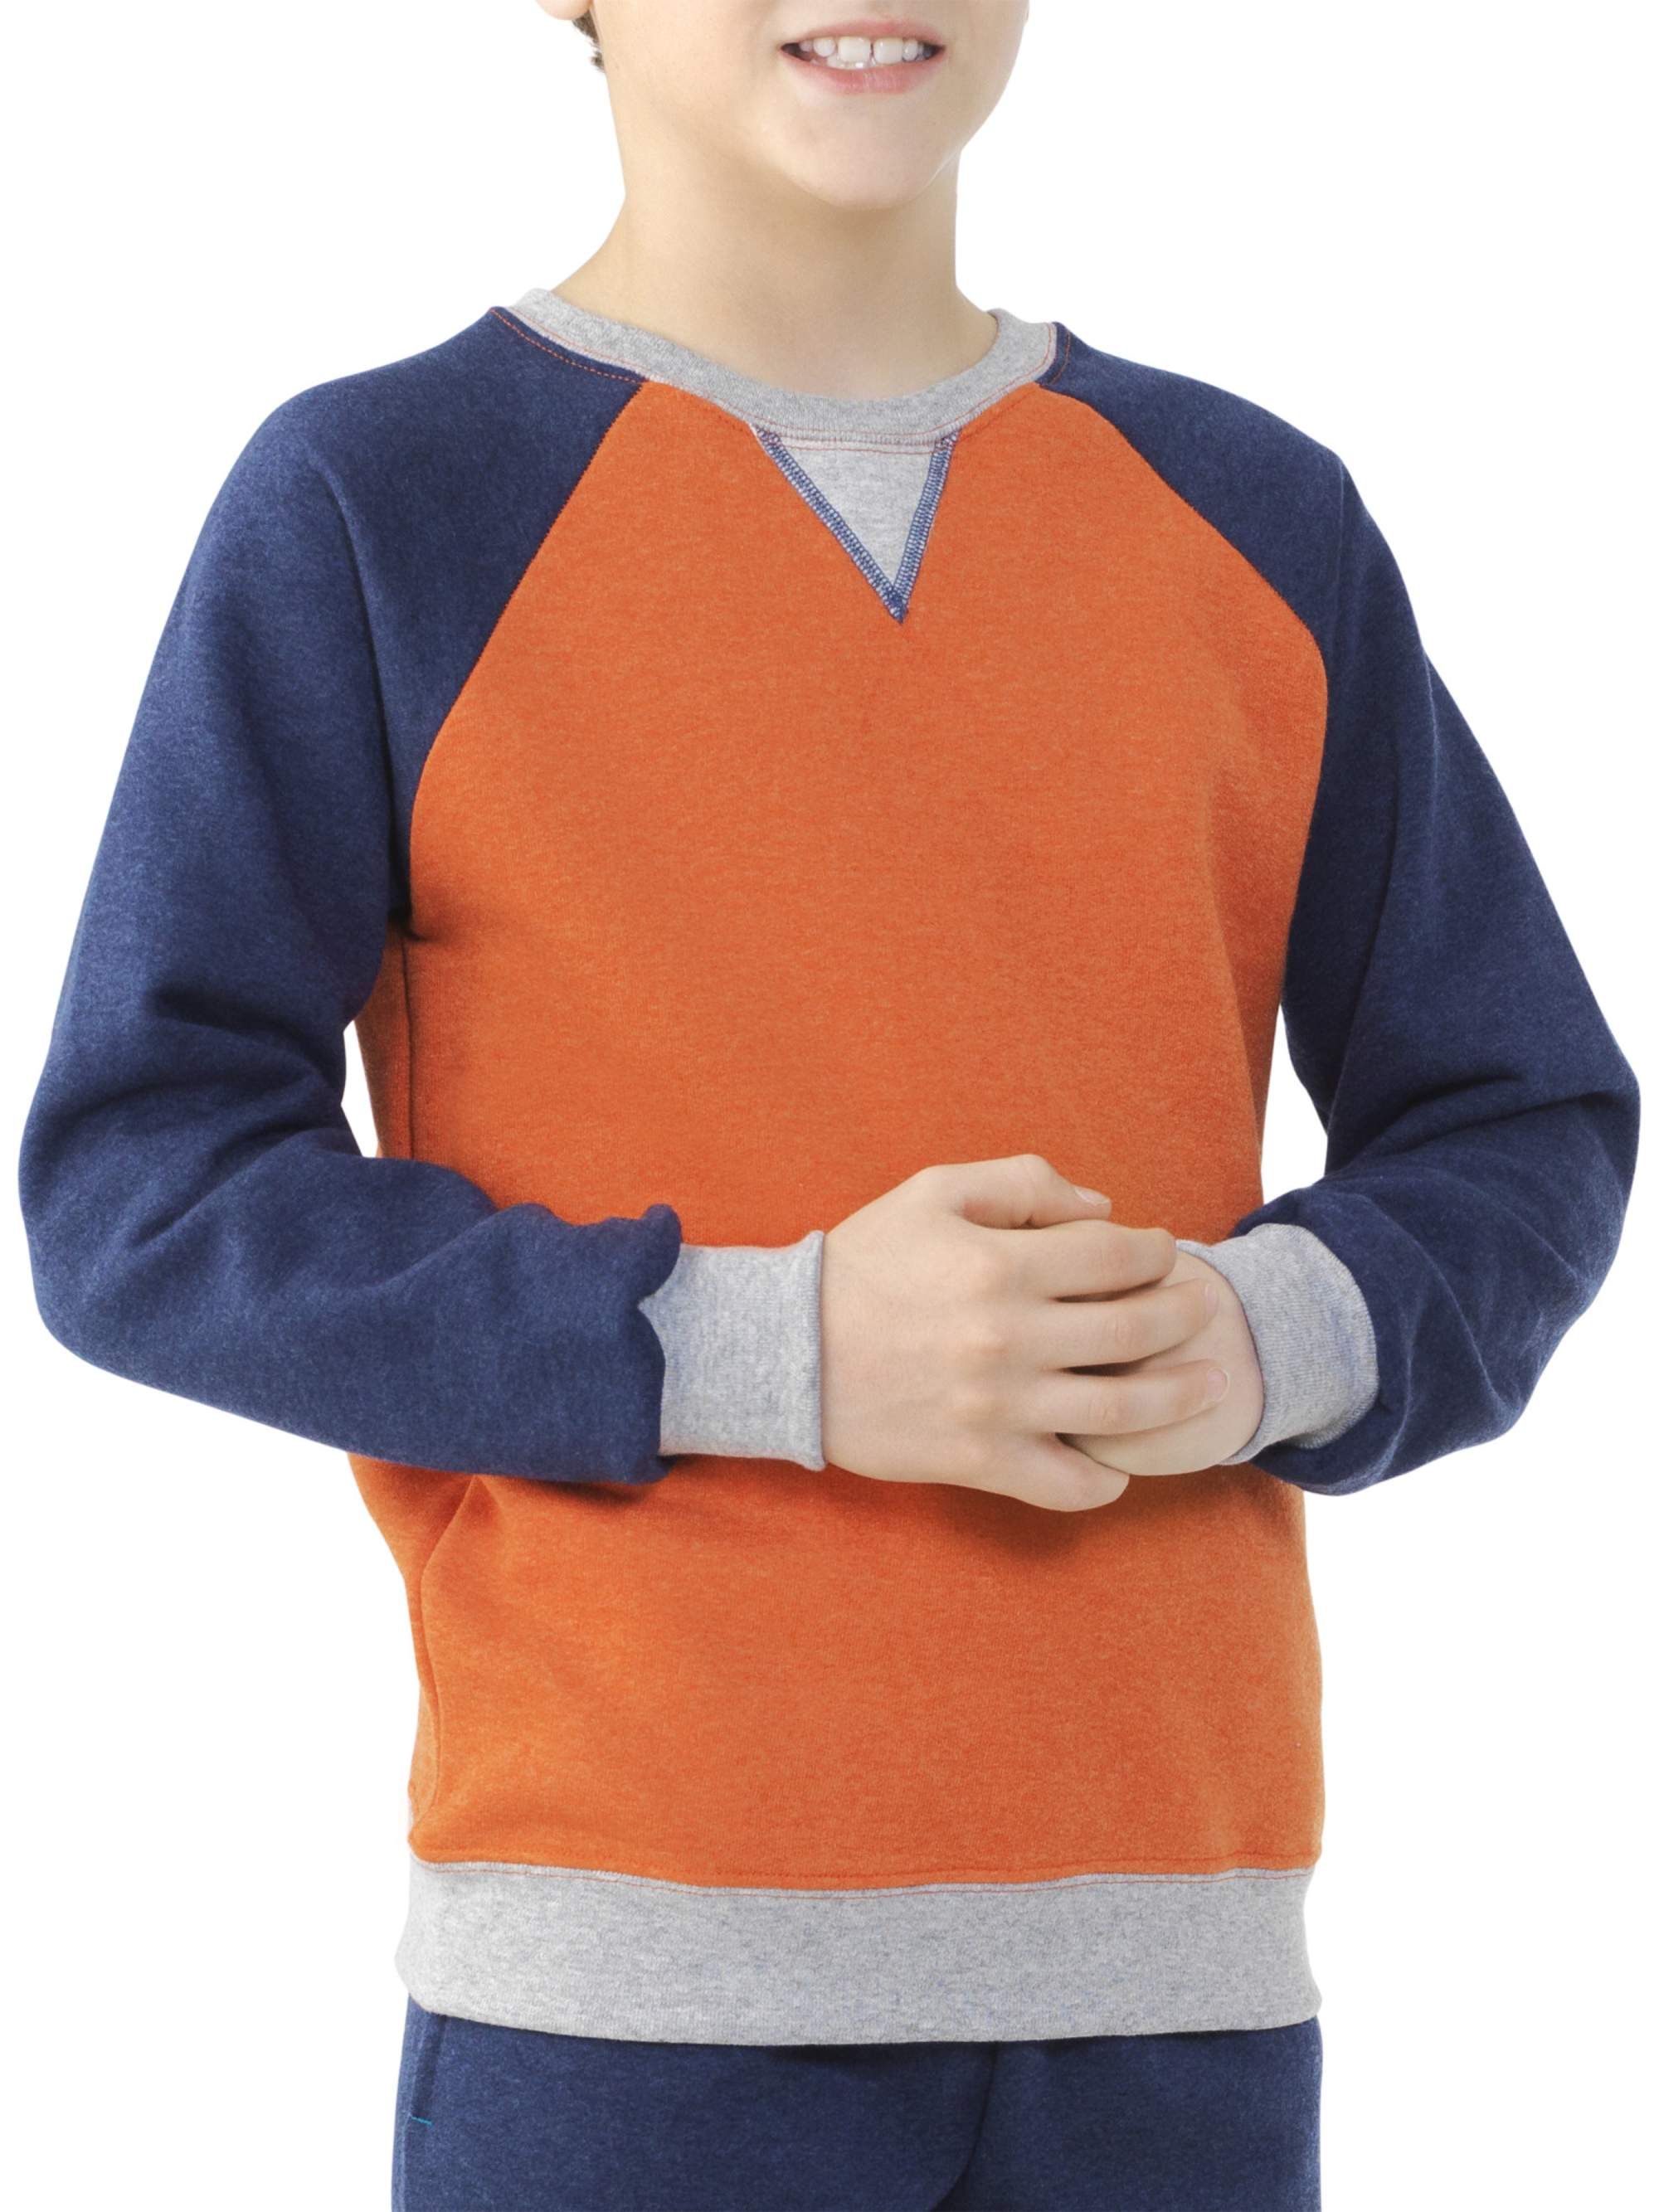 Boys' Explorer Fleece Super Soft Raglan Crew Neck Sweatshirt